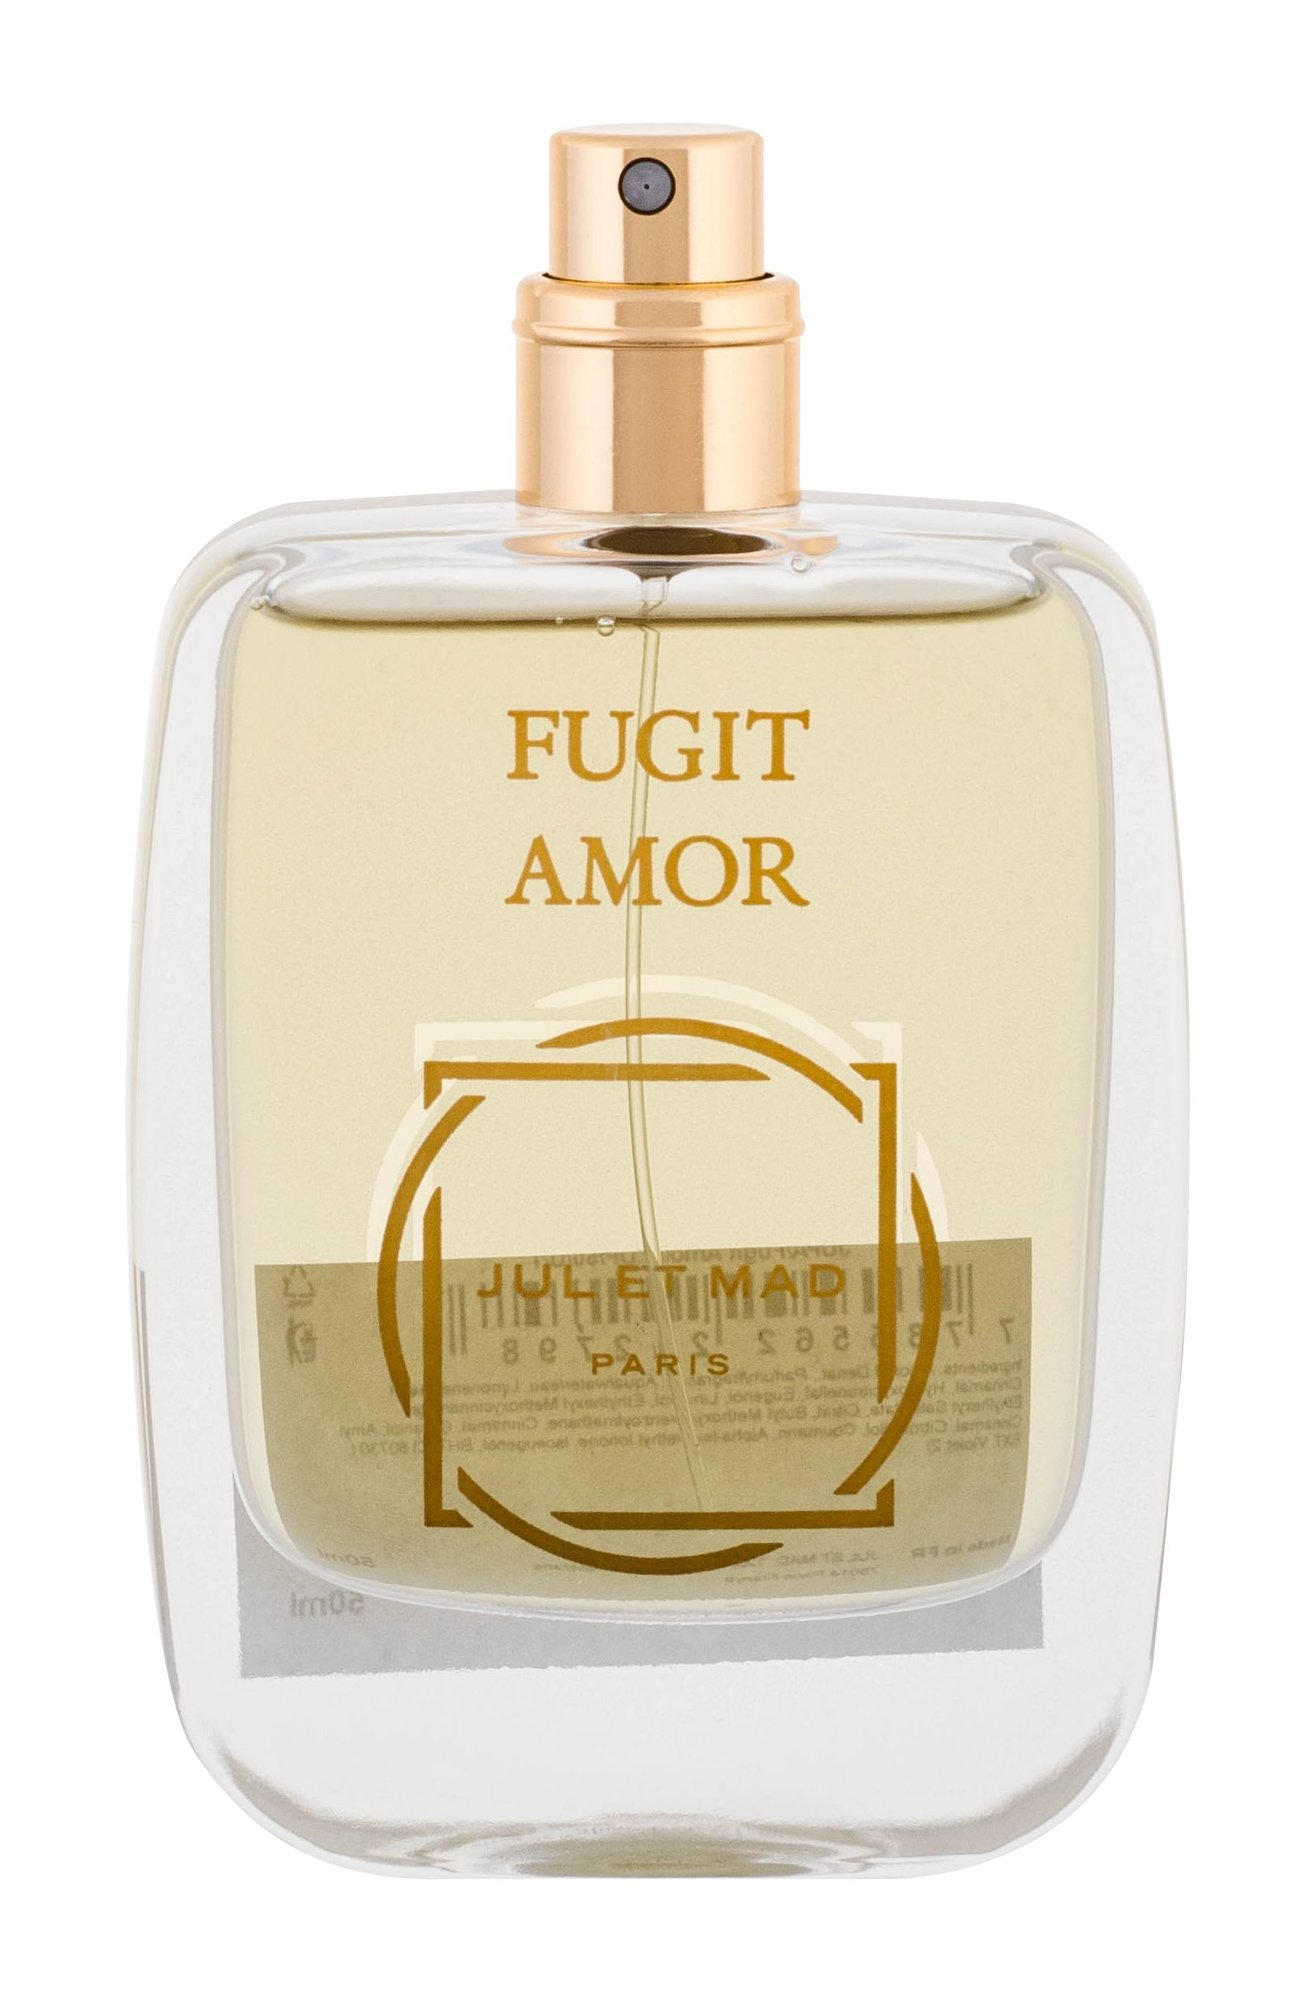 Jul et Mad Paris Fugit Amor Perfume 50ml